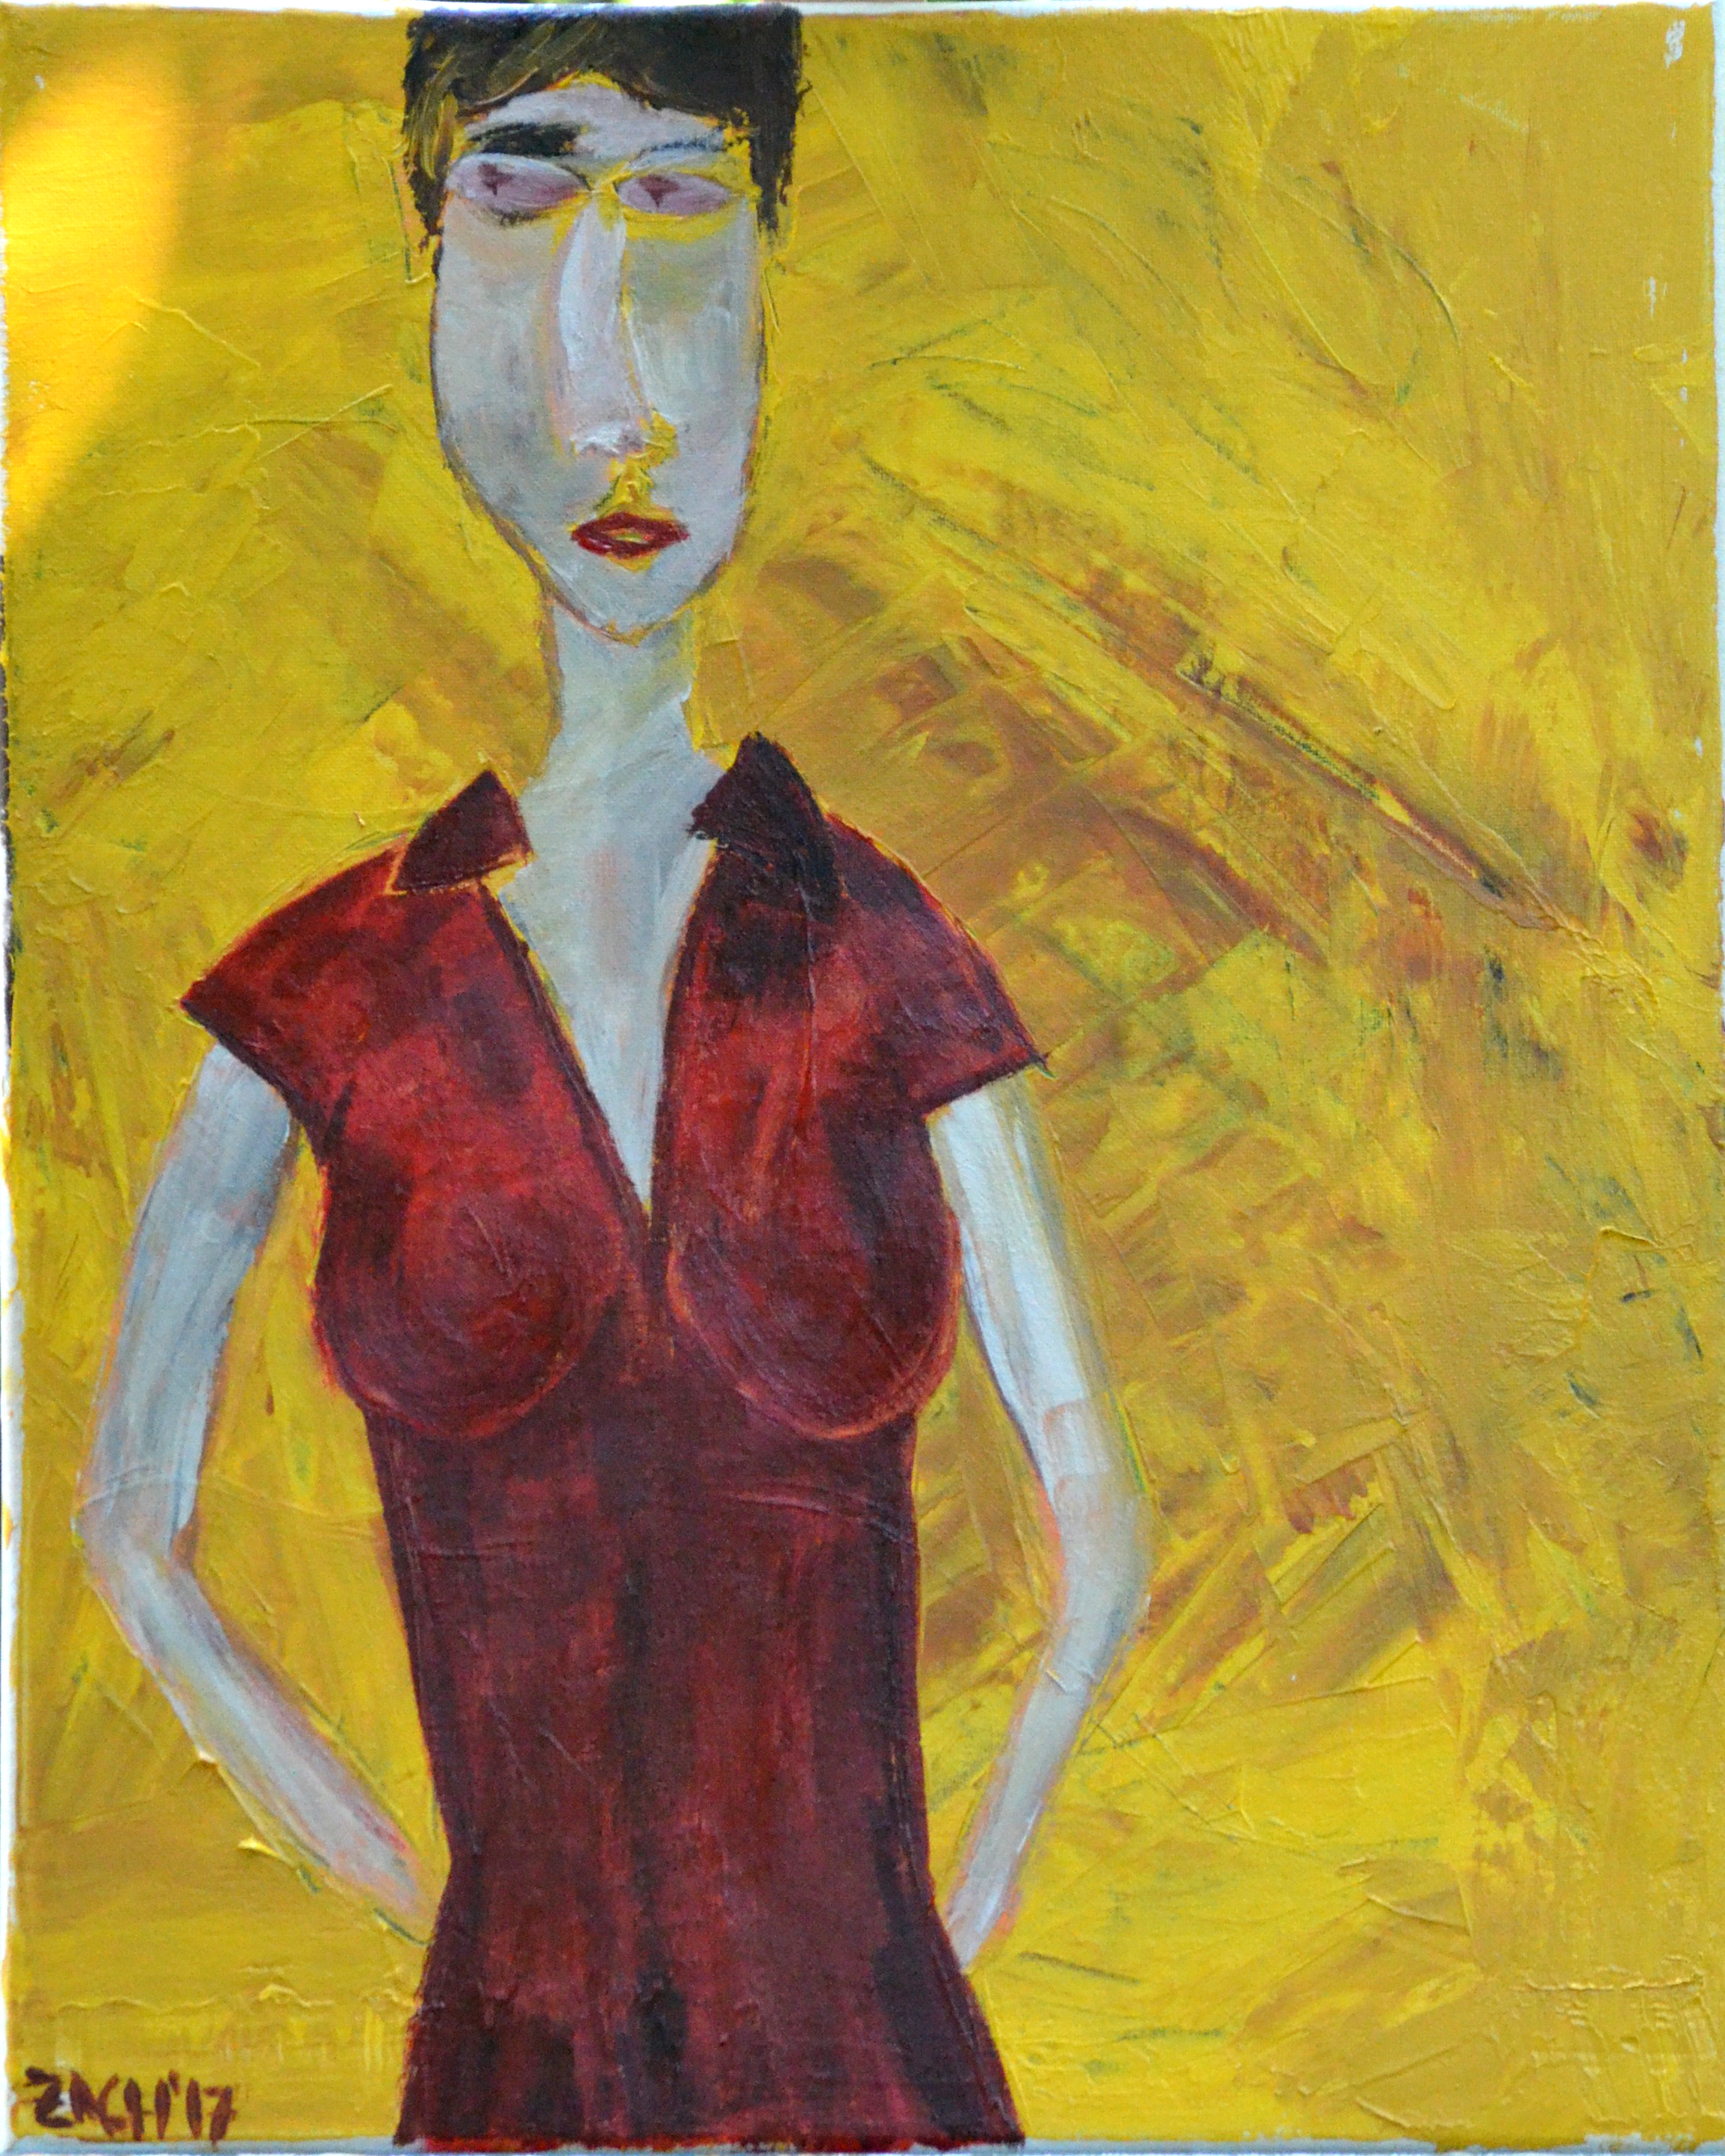 Woman in Red Dress (2017, acrylic, 16 by 20)